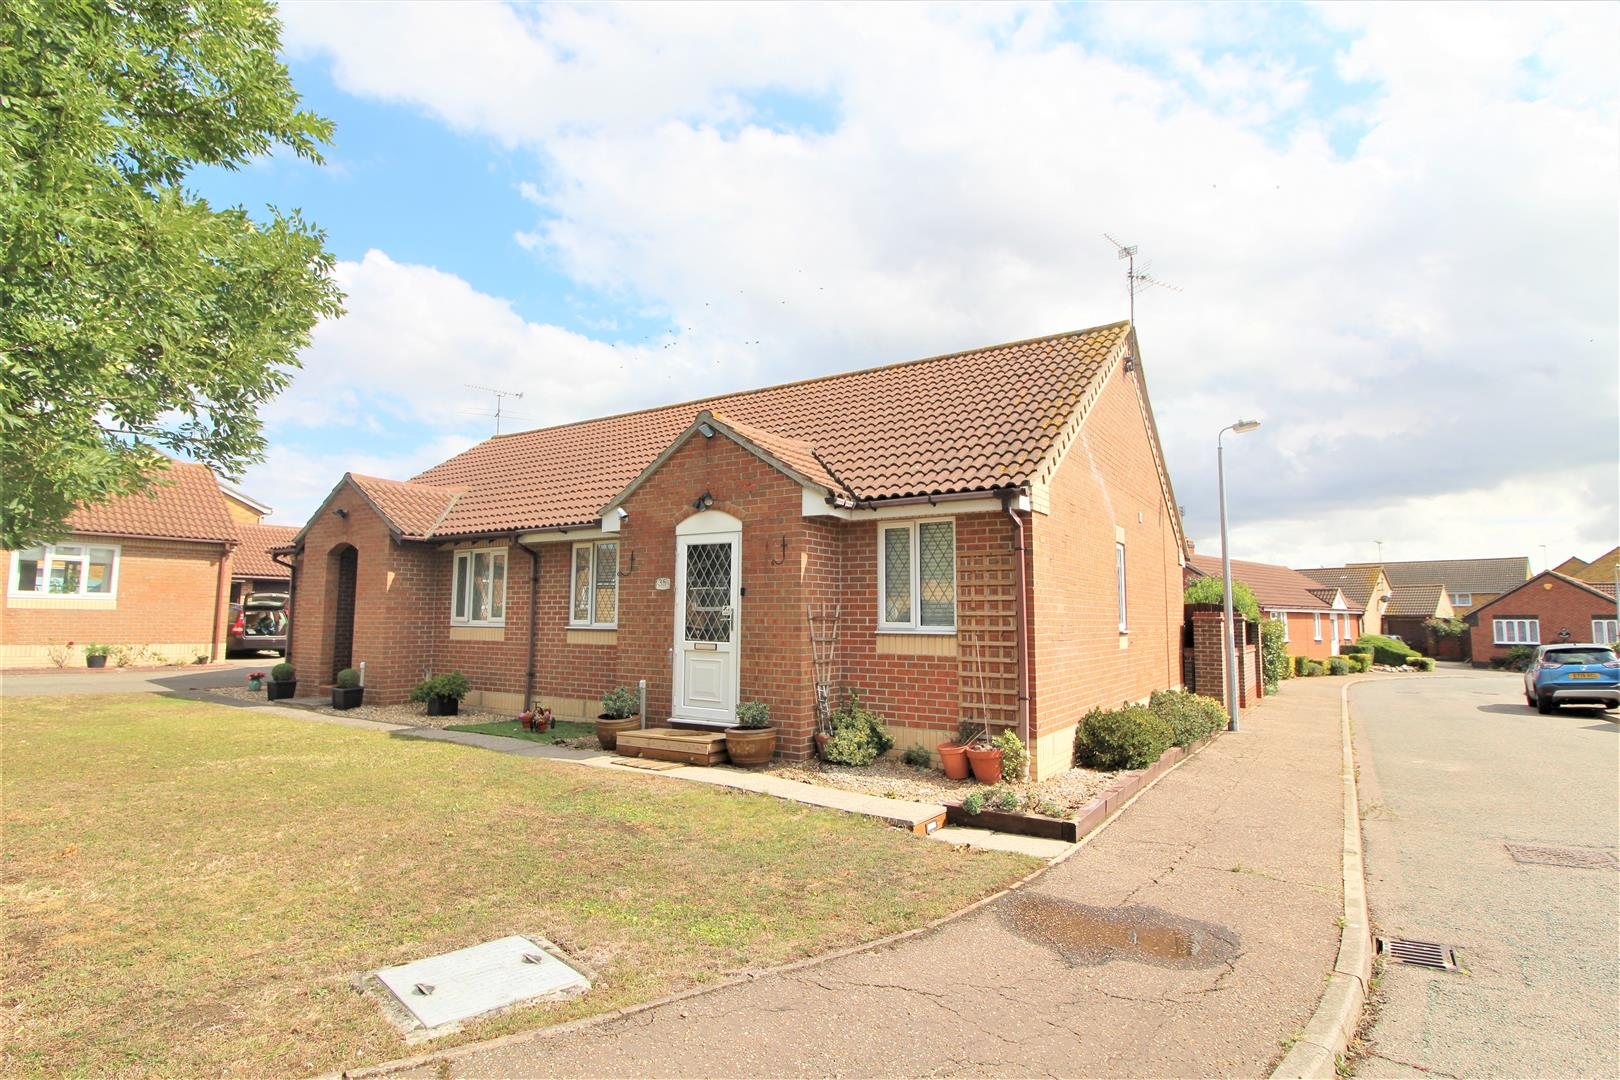 Havering Close, Clacton-On-Sea, Essex, CO15 4UX